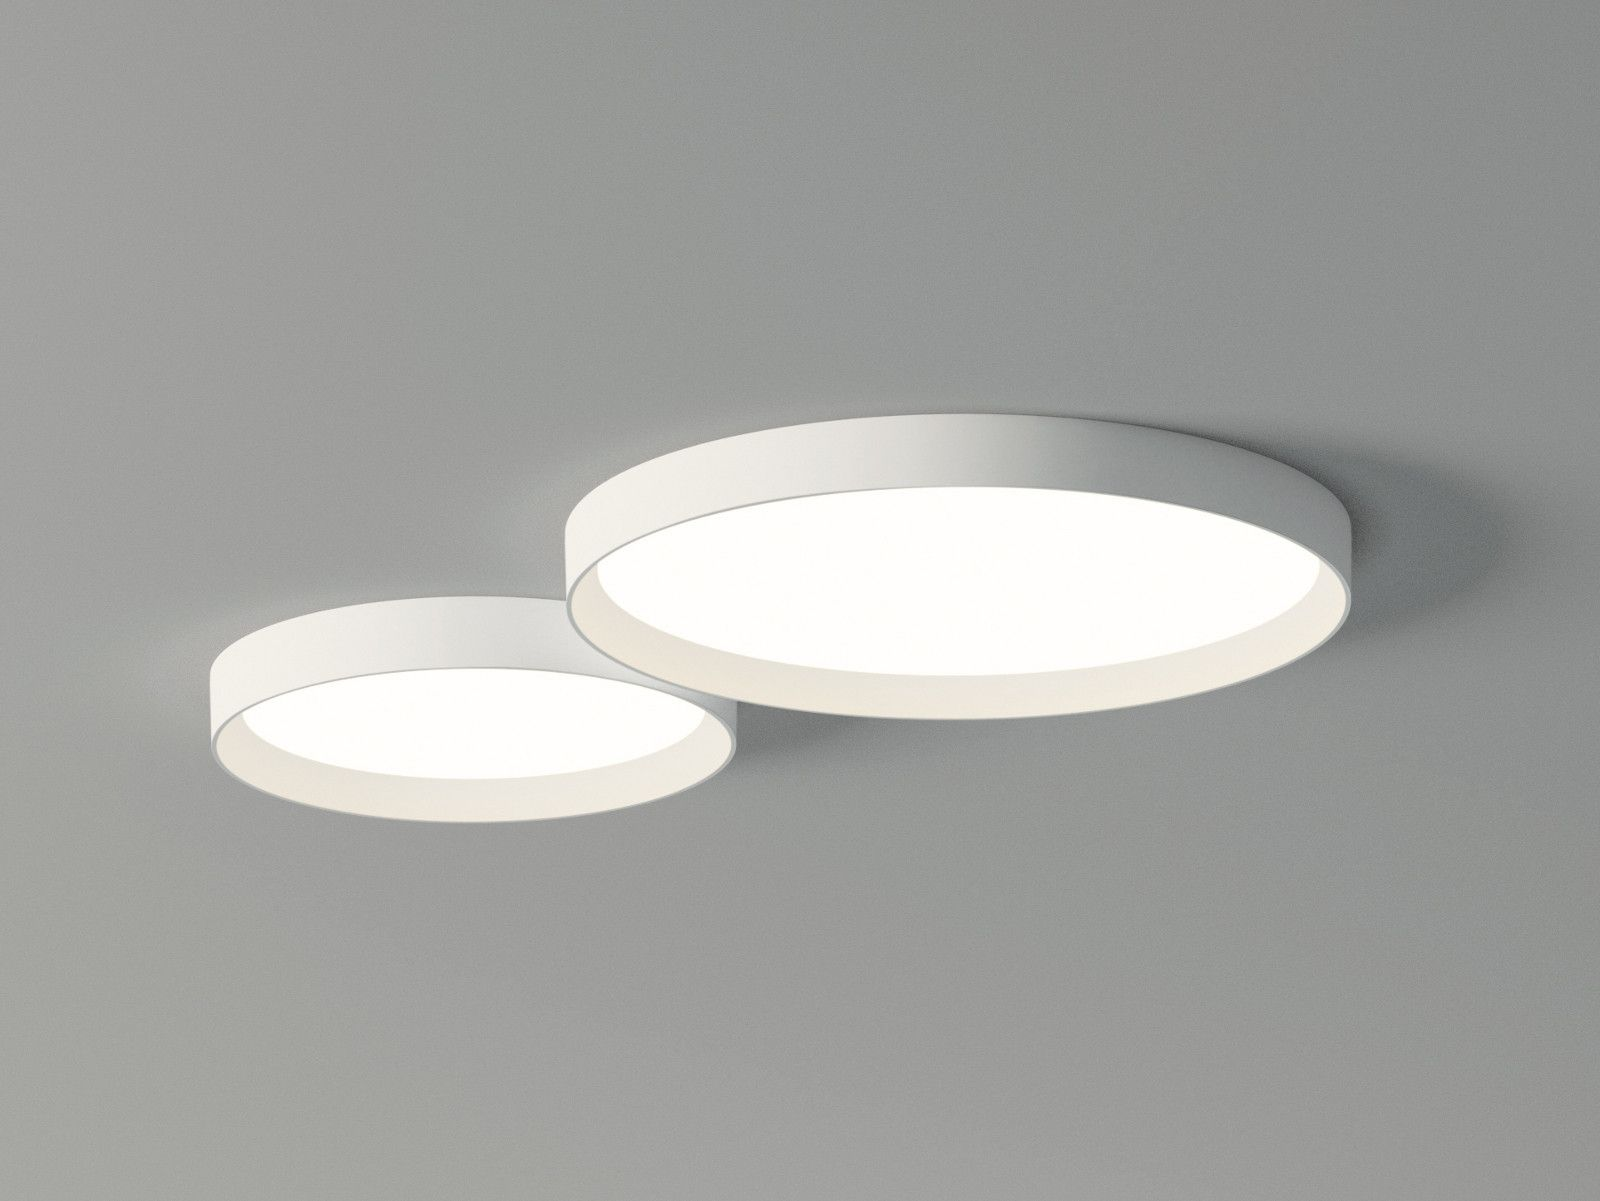 LED Deckenlampe UP 4442 by Vibia | Lampen | Led lampe küche, Lampen ...